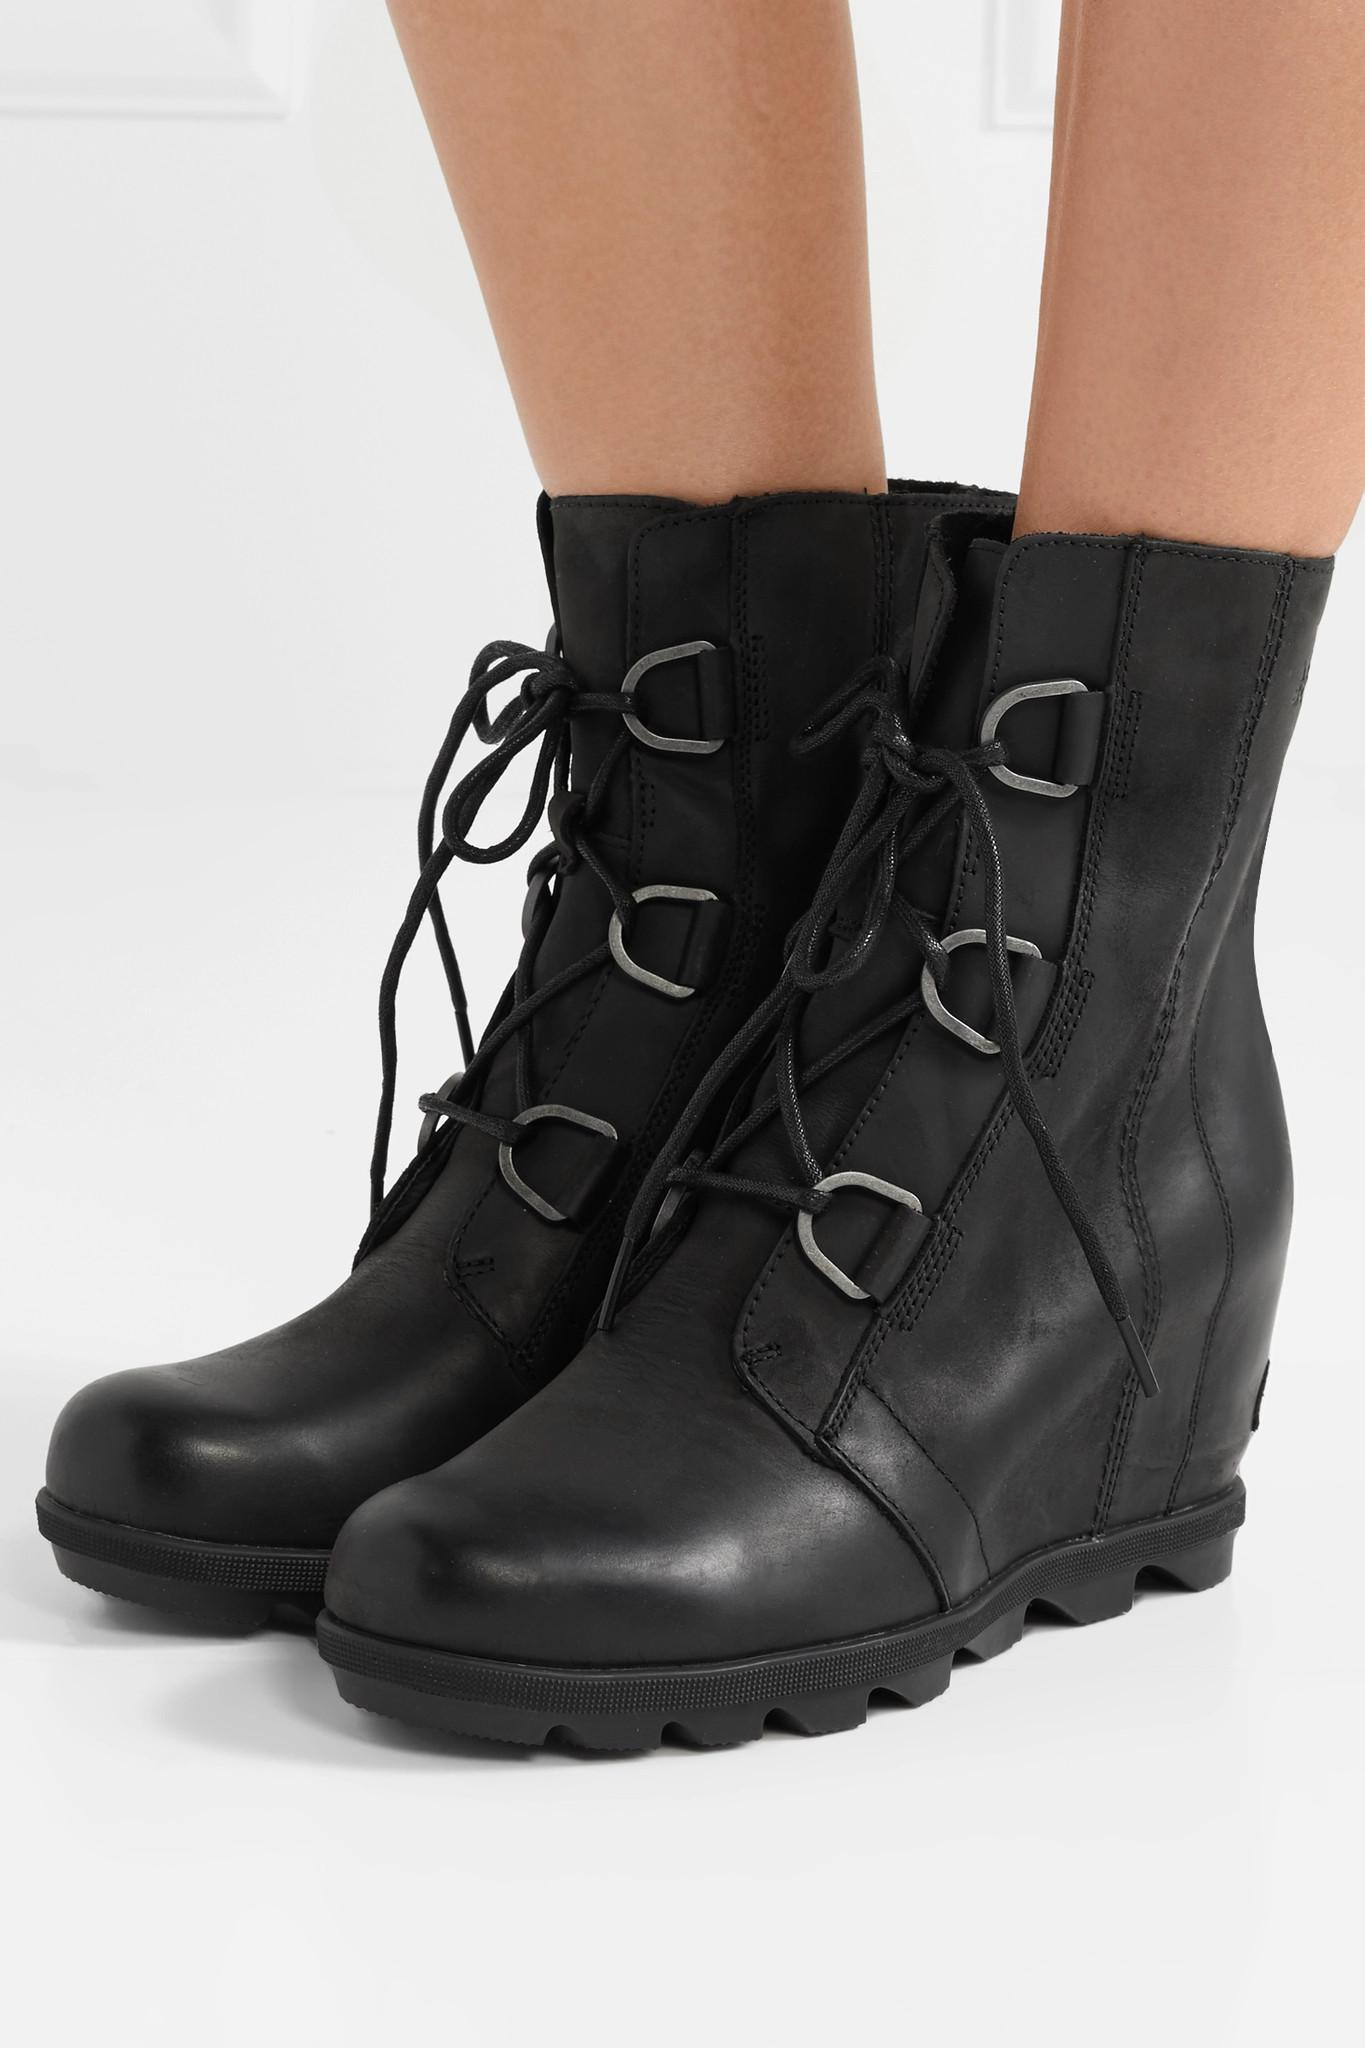 ea4a46355d6f Sorel - Black Joan Of Arctic Wedge Ii Waterproof Leather And Rubber Ankle  Boots - Lyst. View fullscreen